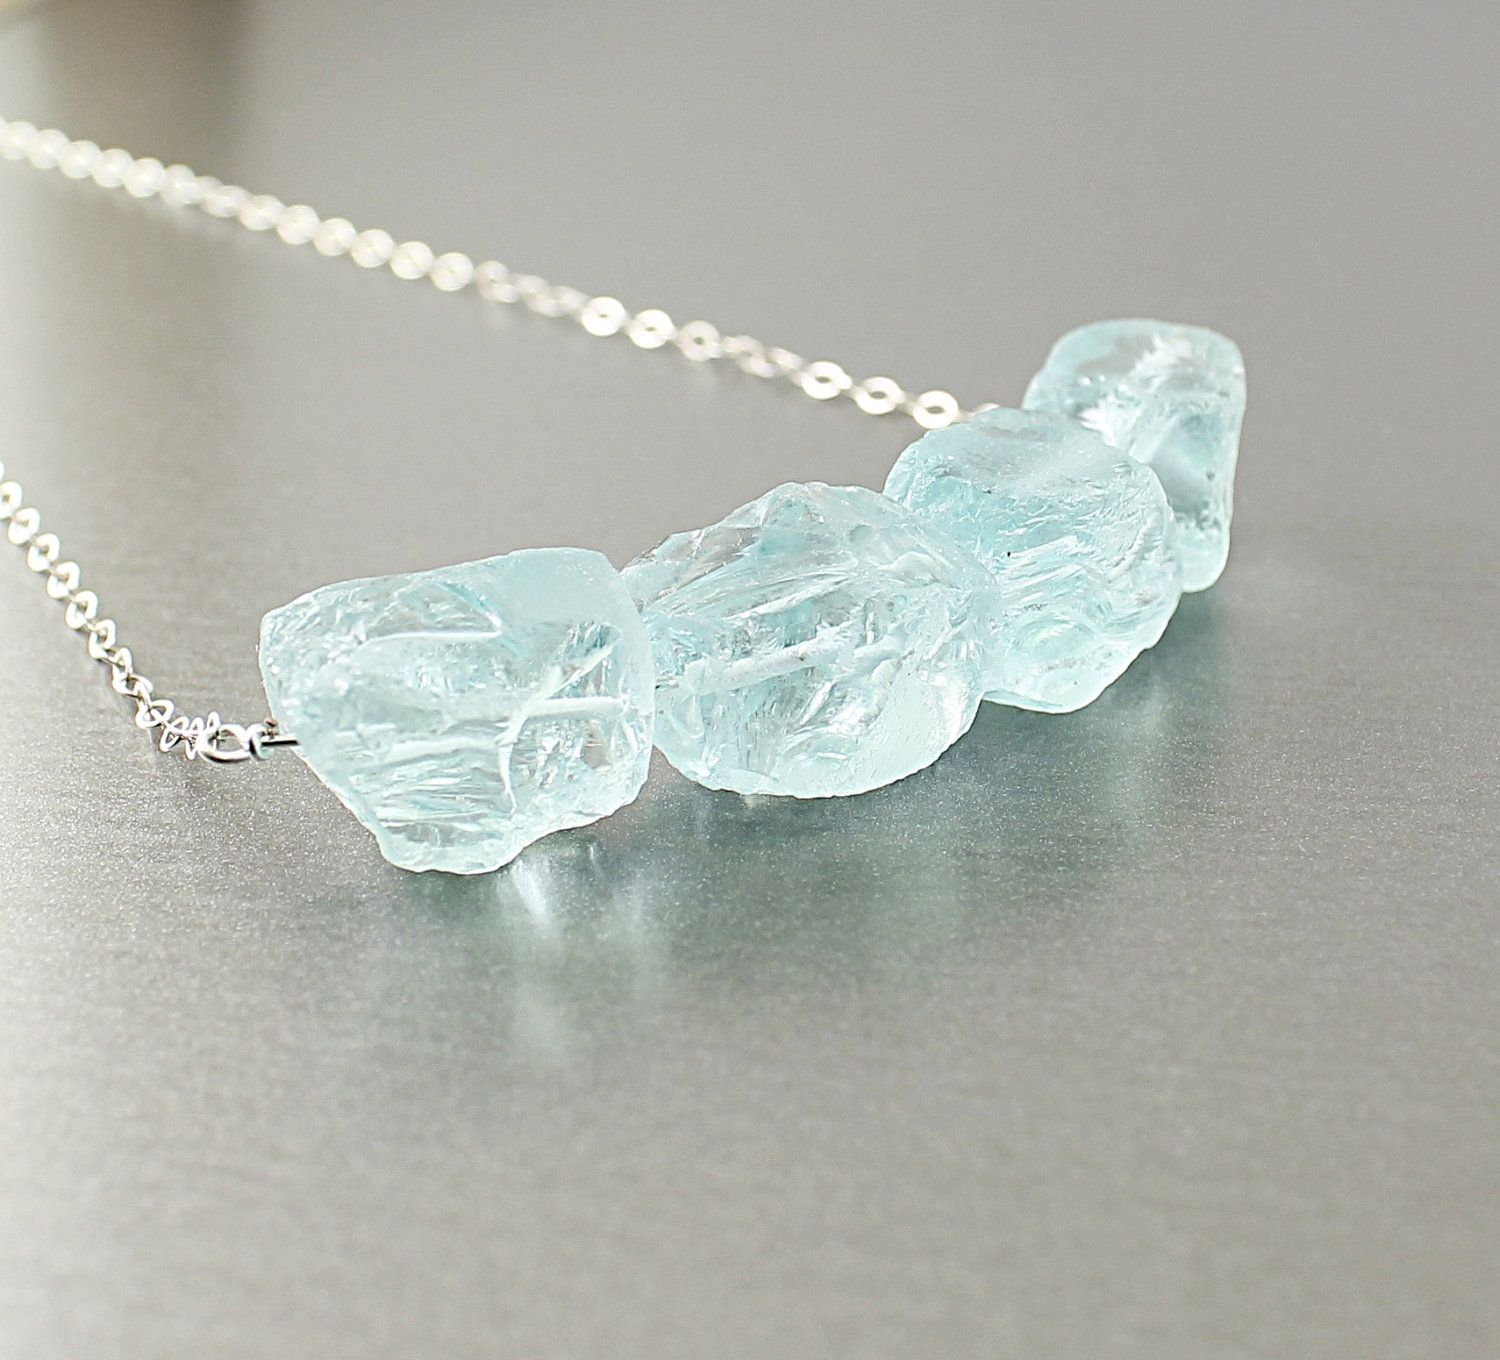 carney lisa design necklace raw shop stone sq aquamarine